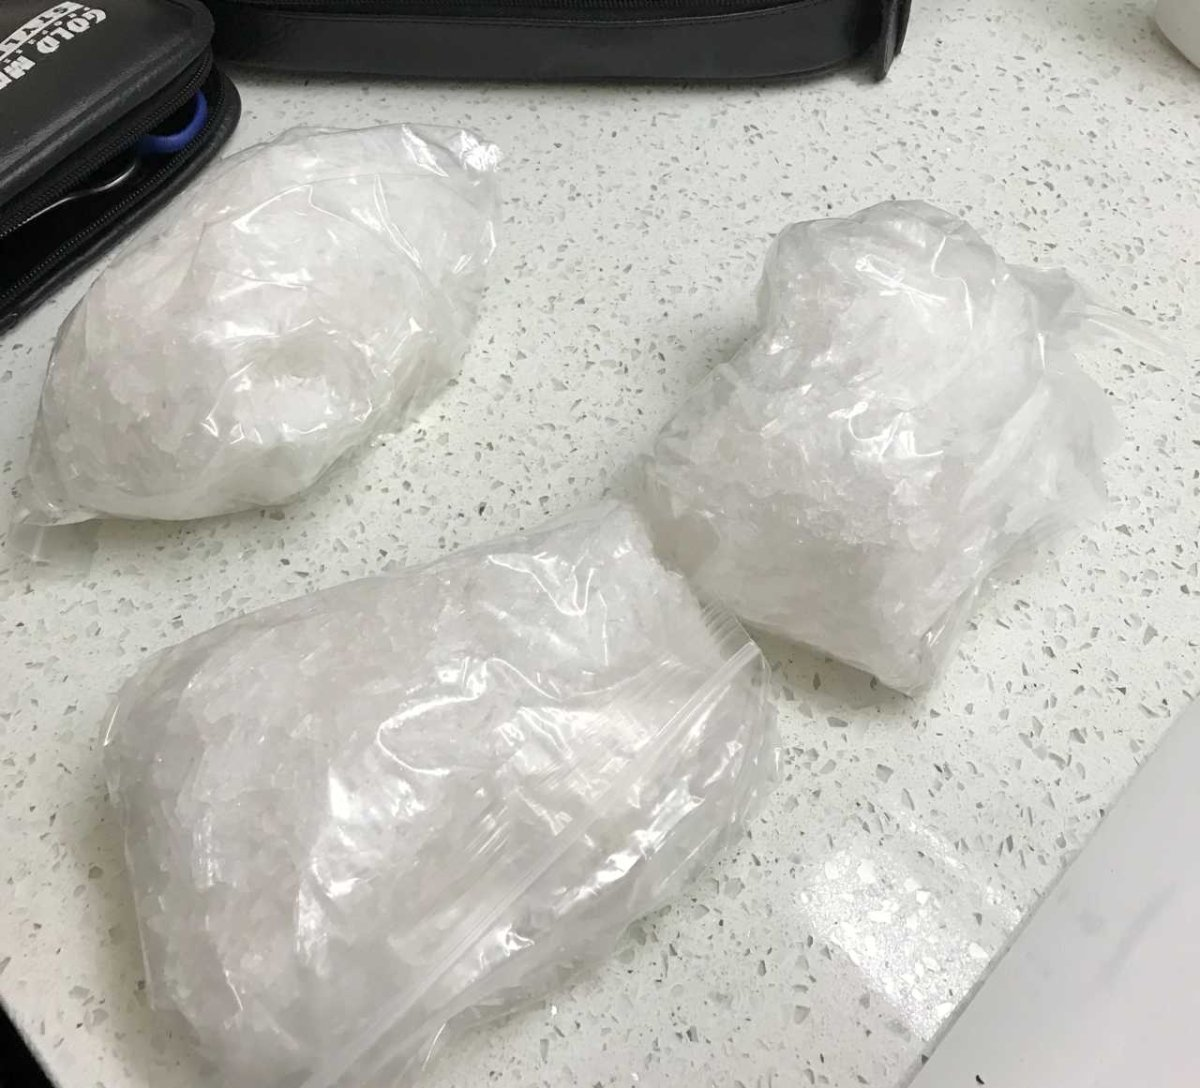 Police Find 2 Pounds Of Meth And Semi Automatic Weapons In